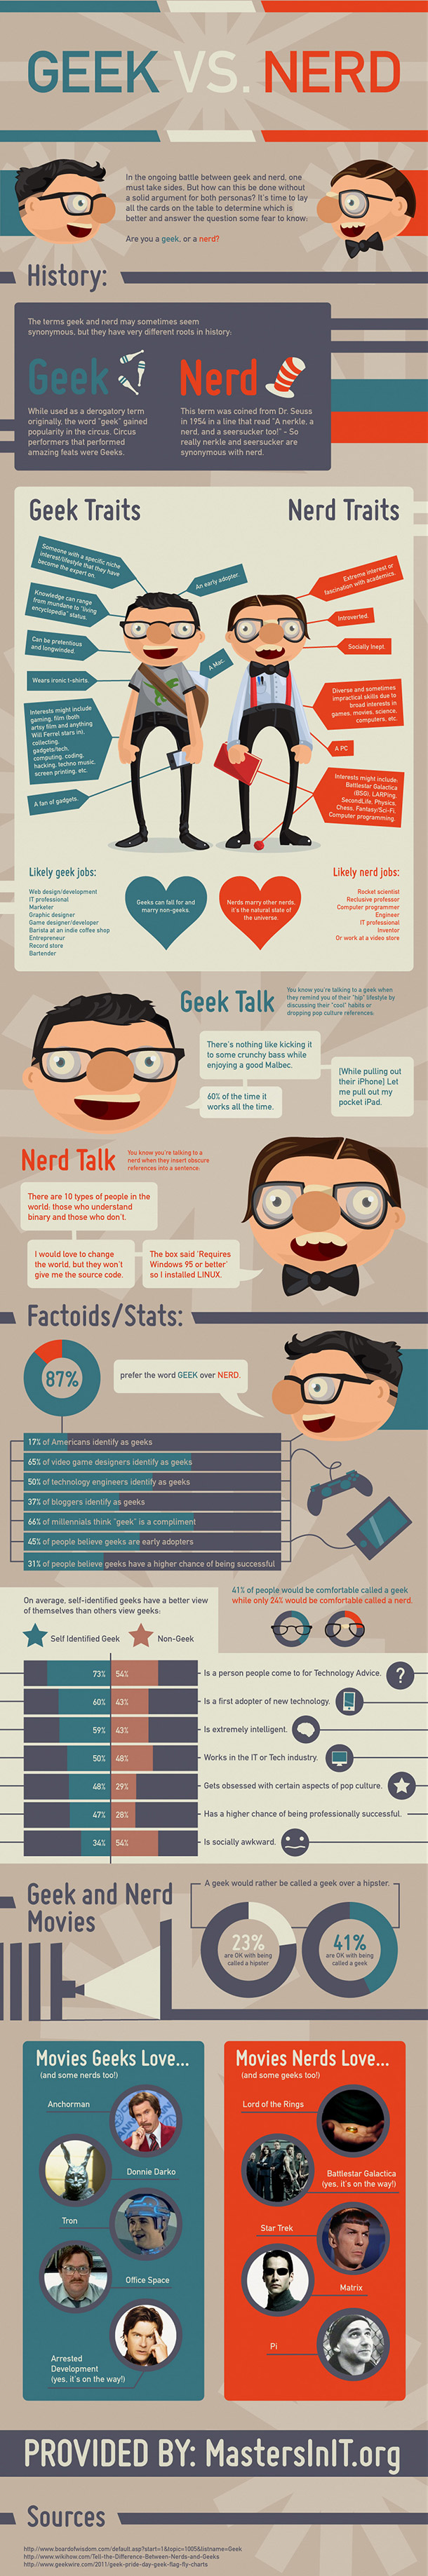 geek-vs-nerd-Funny-Infographic-2013